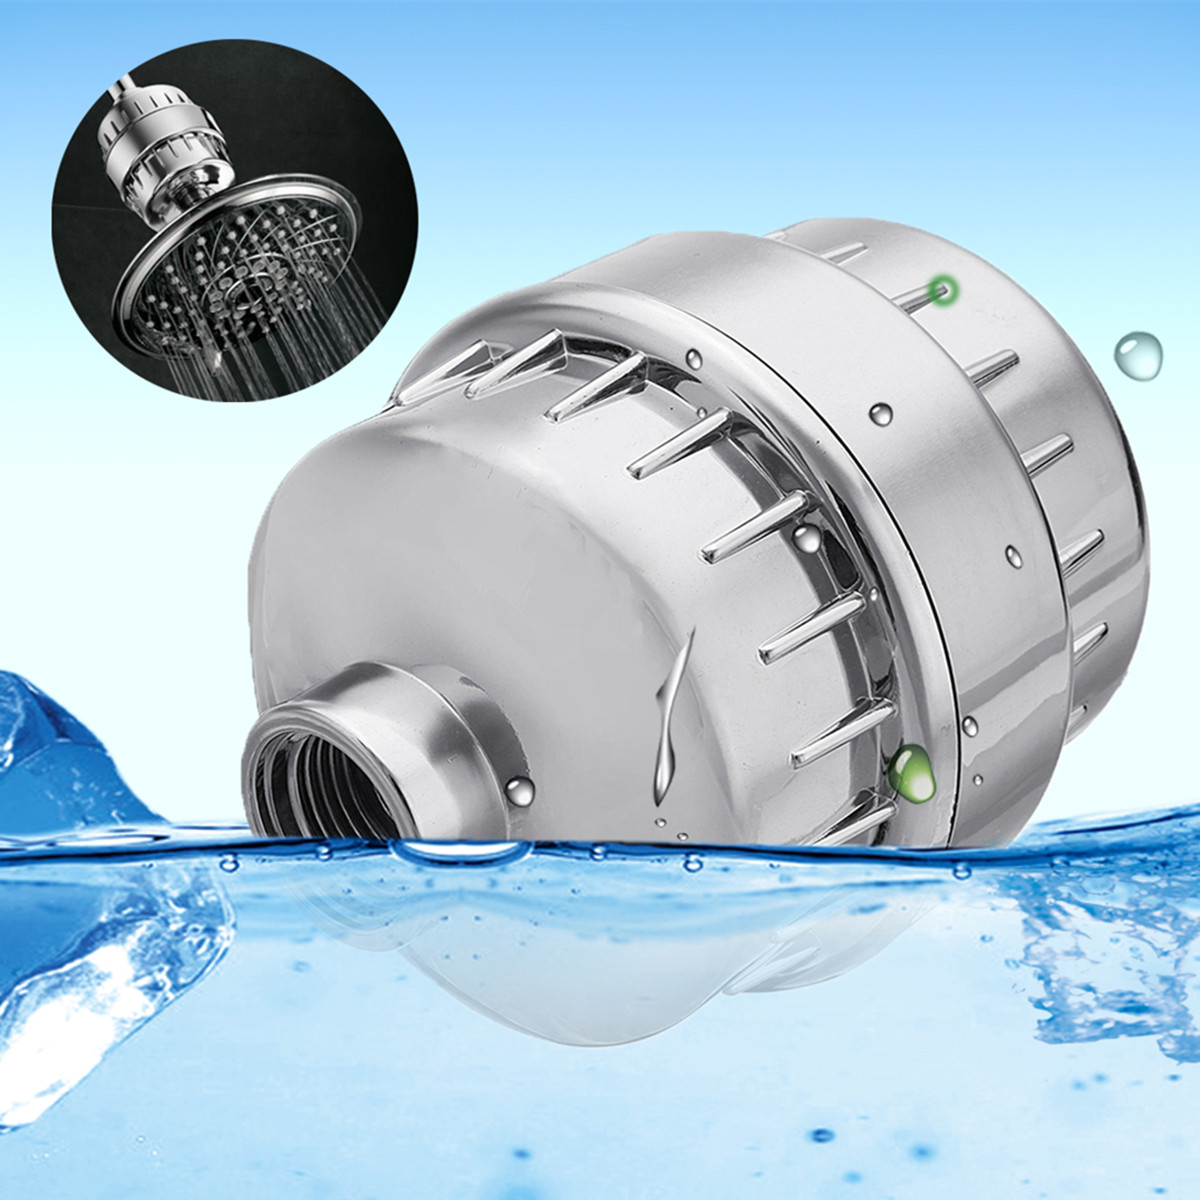 Bathroom Shower Filter Chlorine Removal Heavy Metal Remove Chlorine Water Filter Purifier For Health Bathing in line bathroom shower filter bathing water filter purifier water treatment health softener chlorine removal for kitchen home